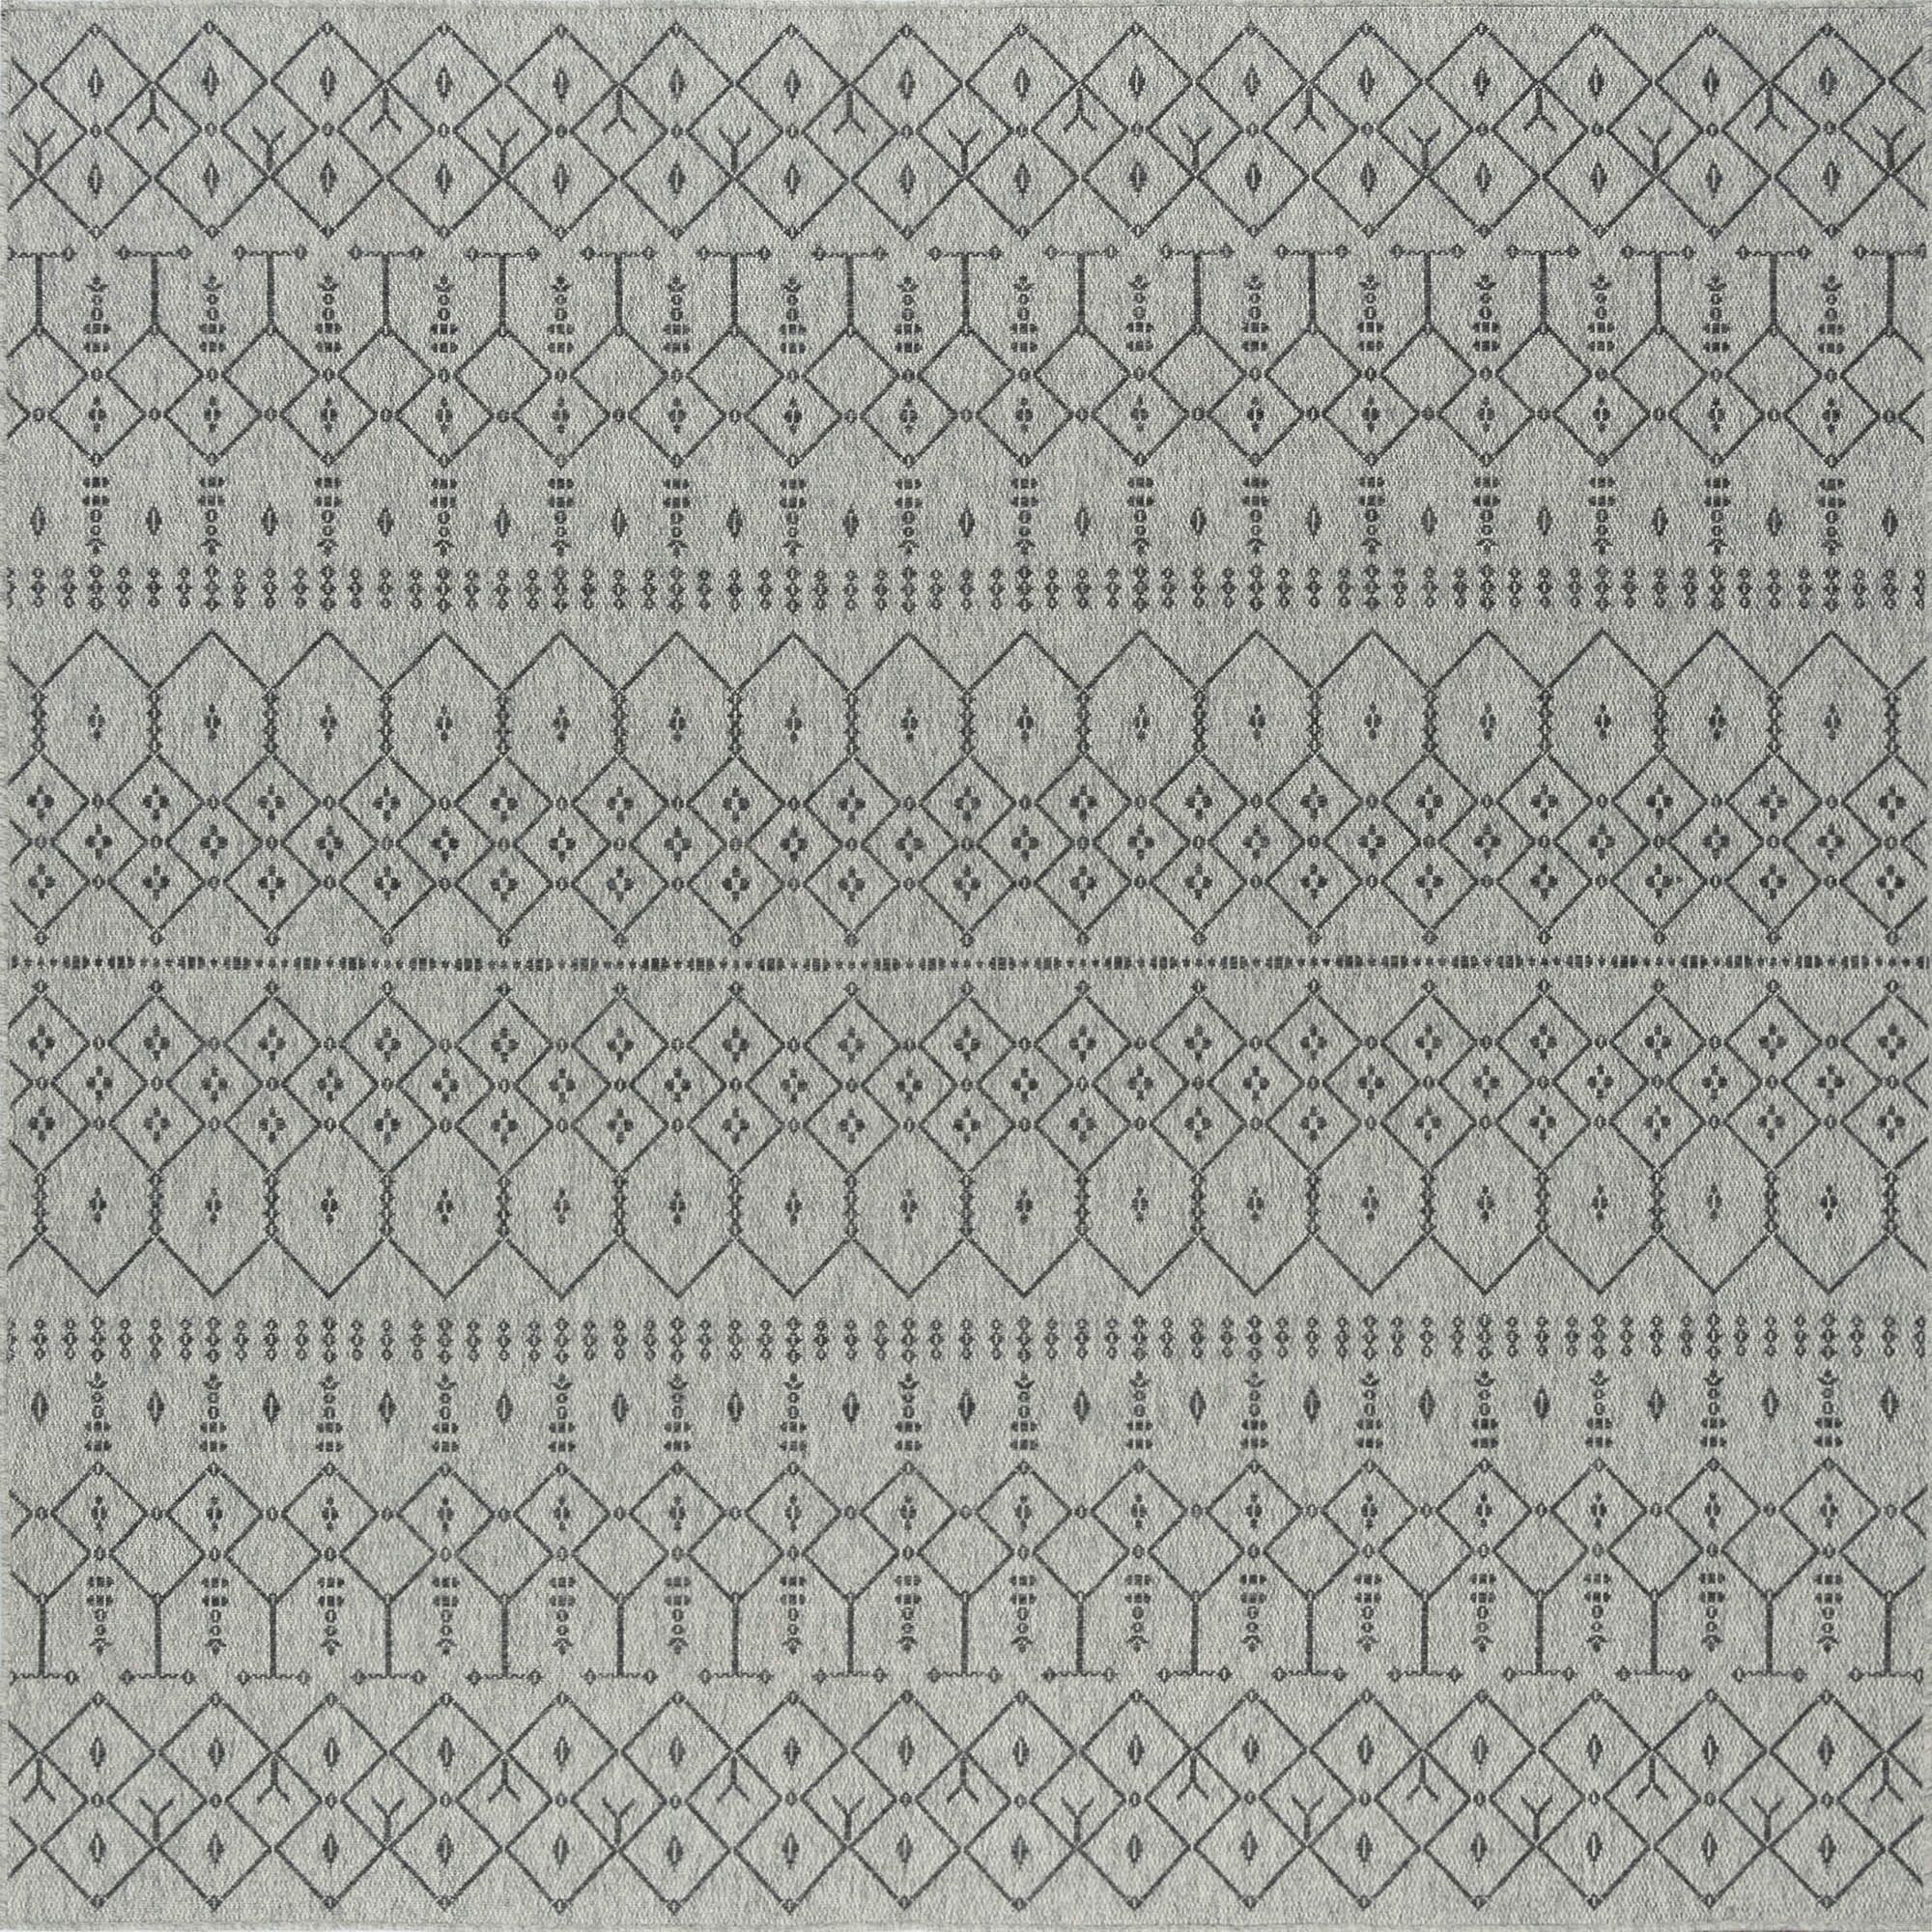 Bourke Modern Gray/Charcoal Indoor/Outdoor Area Rug Rug Size: Square 7'9''